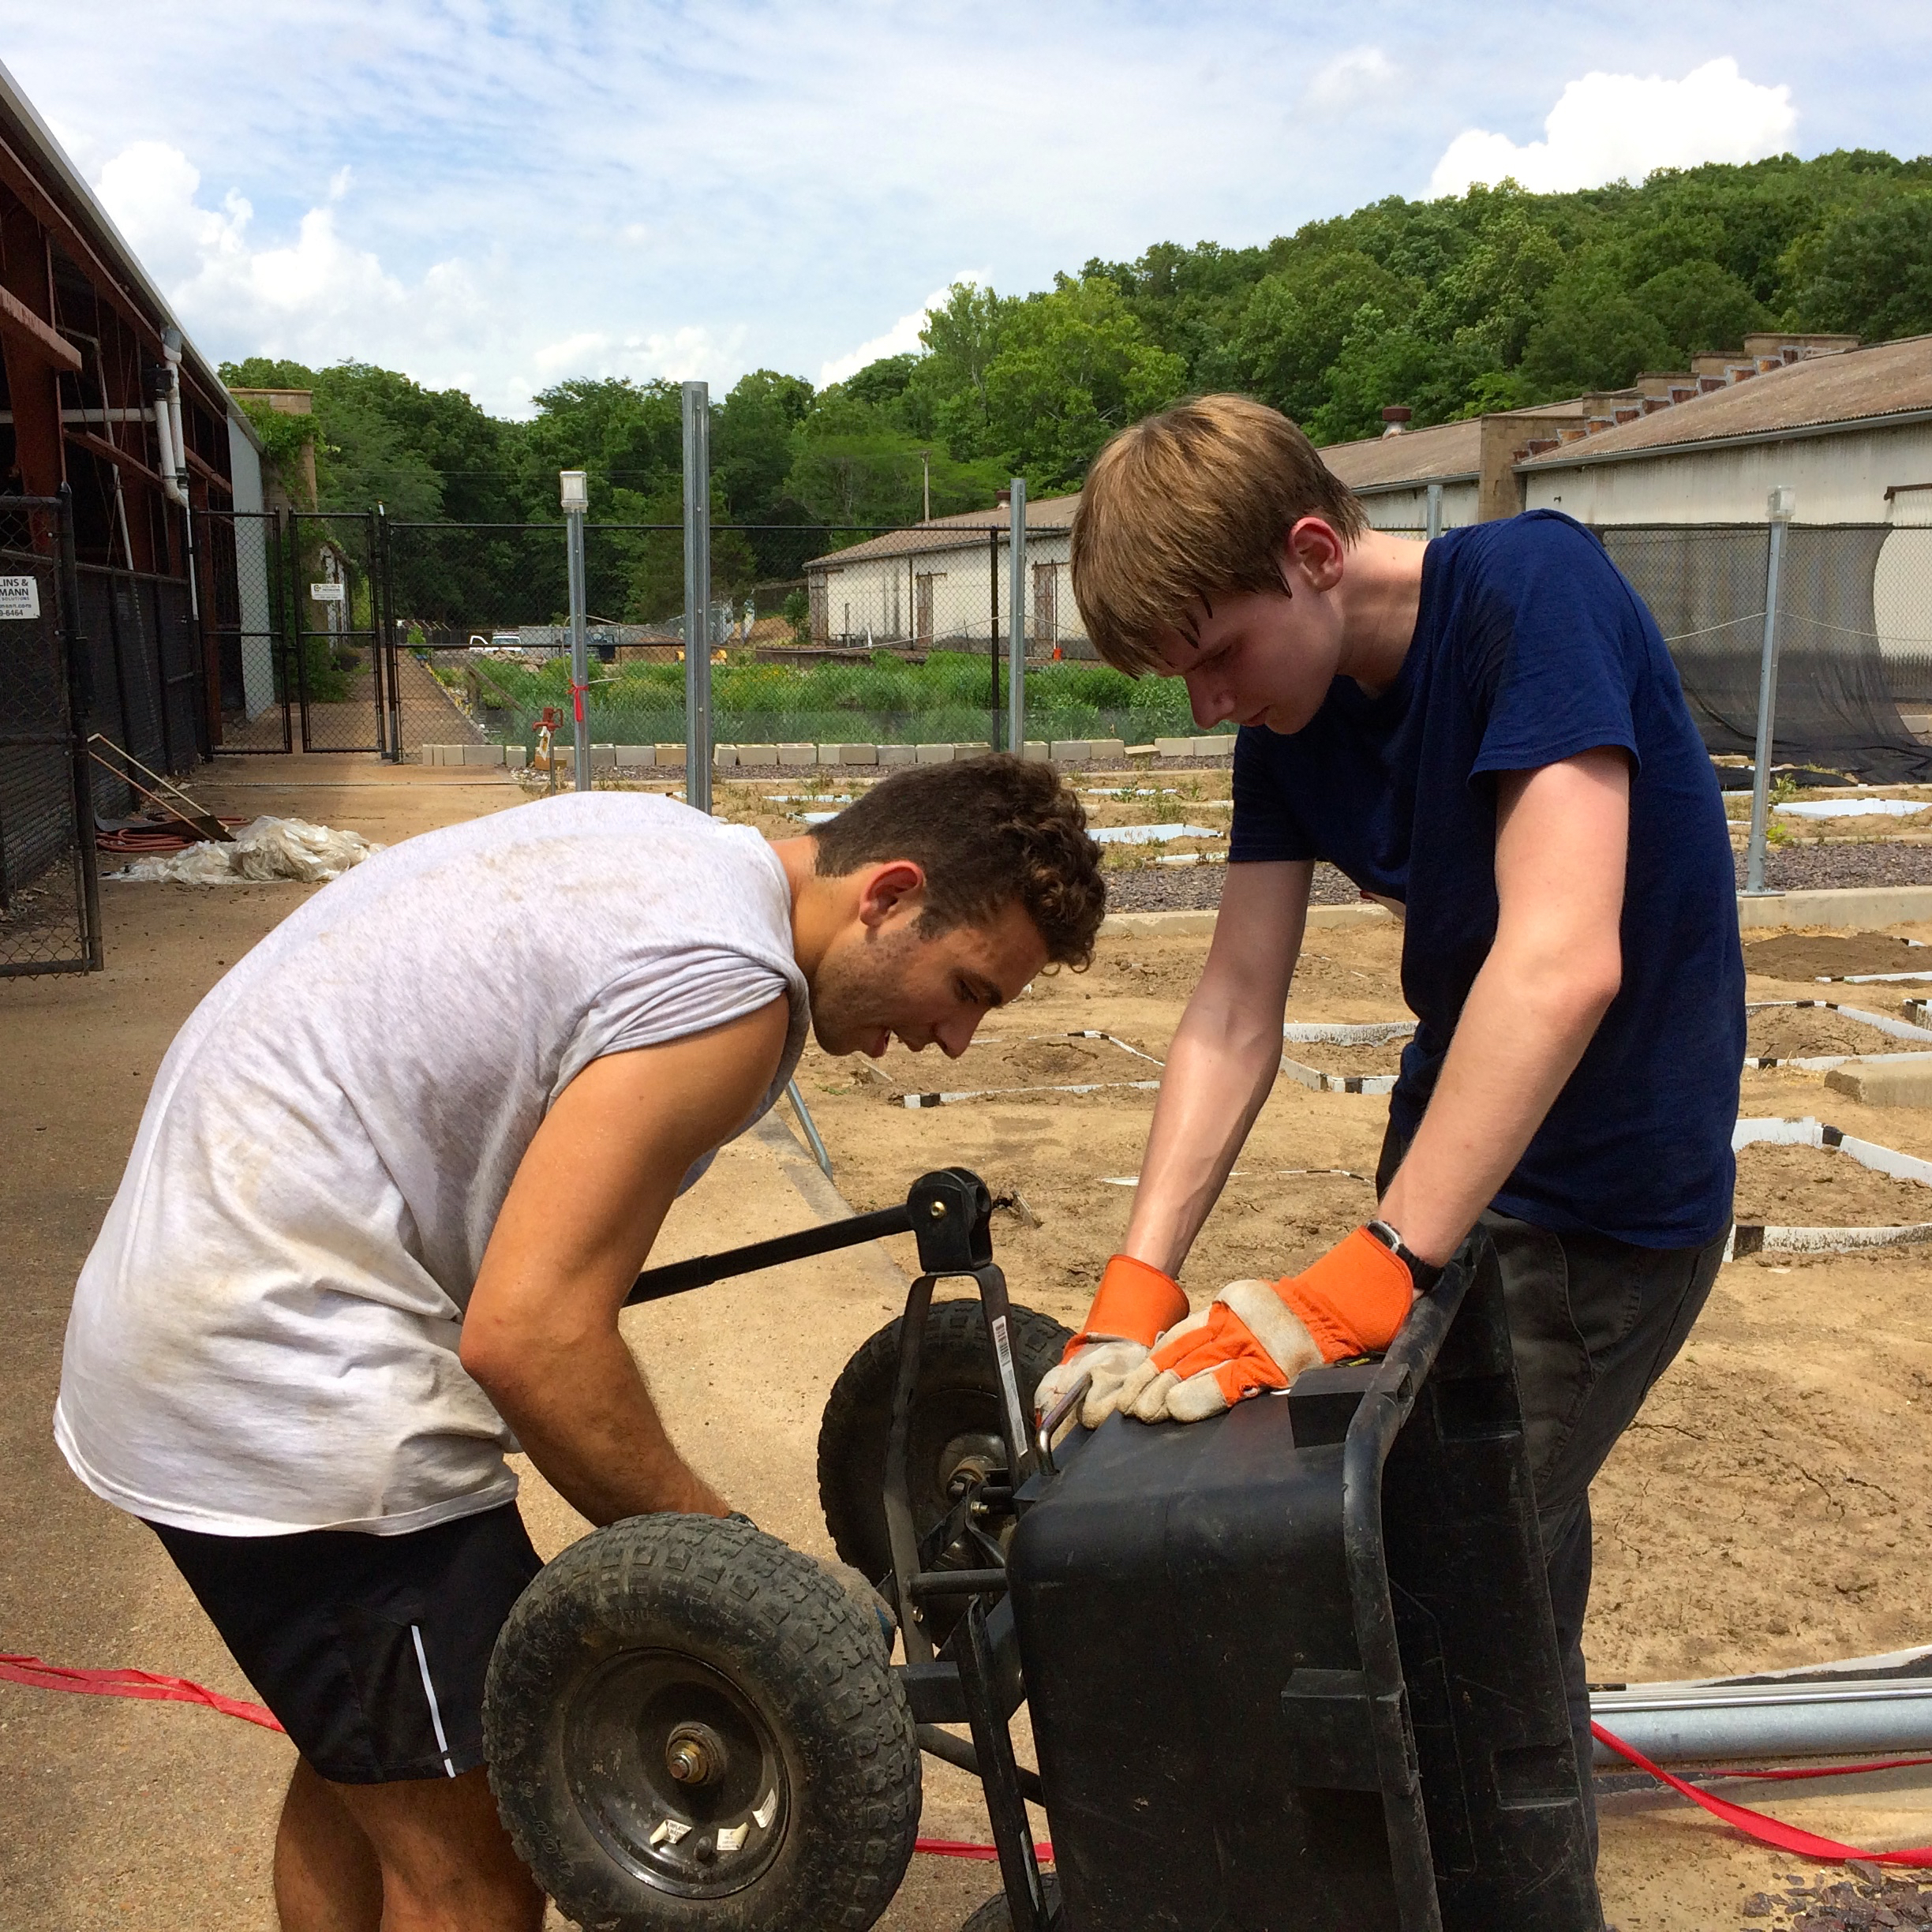 Daniel (right) is helping WashU undergraduate Ivan (left) repair the axle of a wheelbarrow so they can transport sterilized soil to the research garden. The Natural Enemies team is setting up a new experiment for WashU PhD candidate Rachel Becknell.